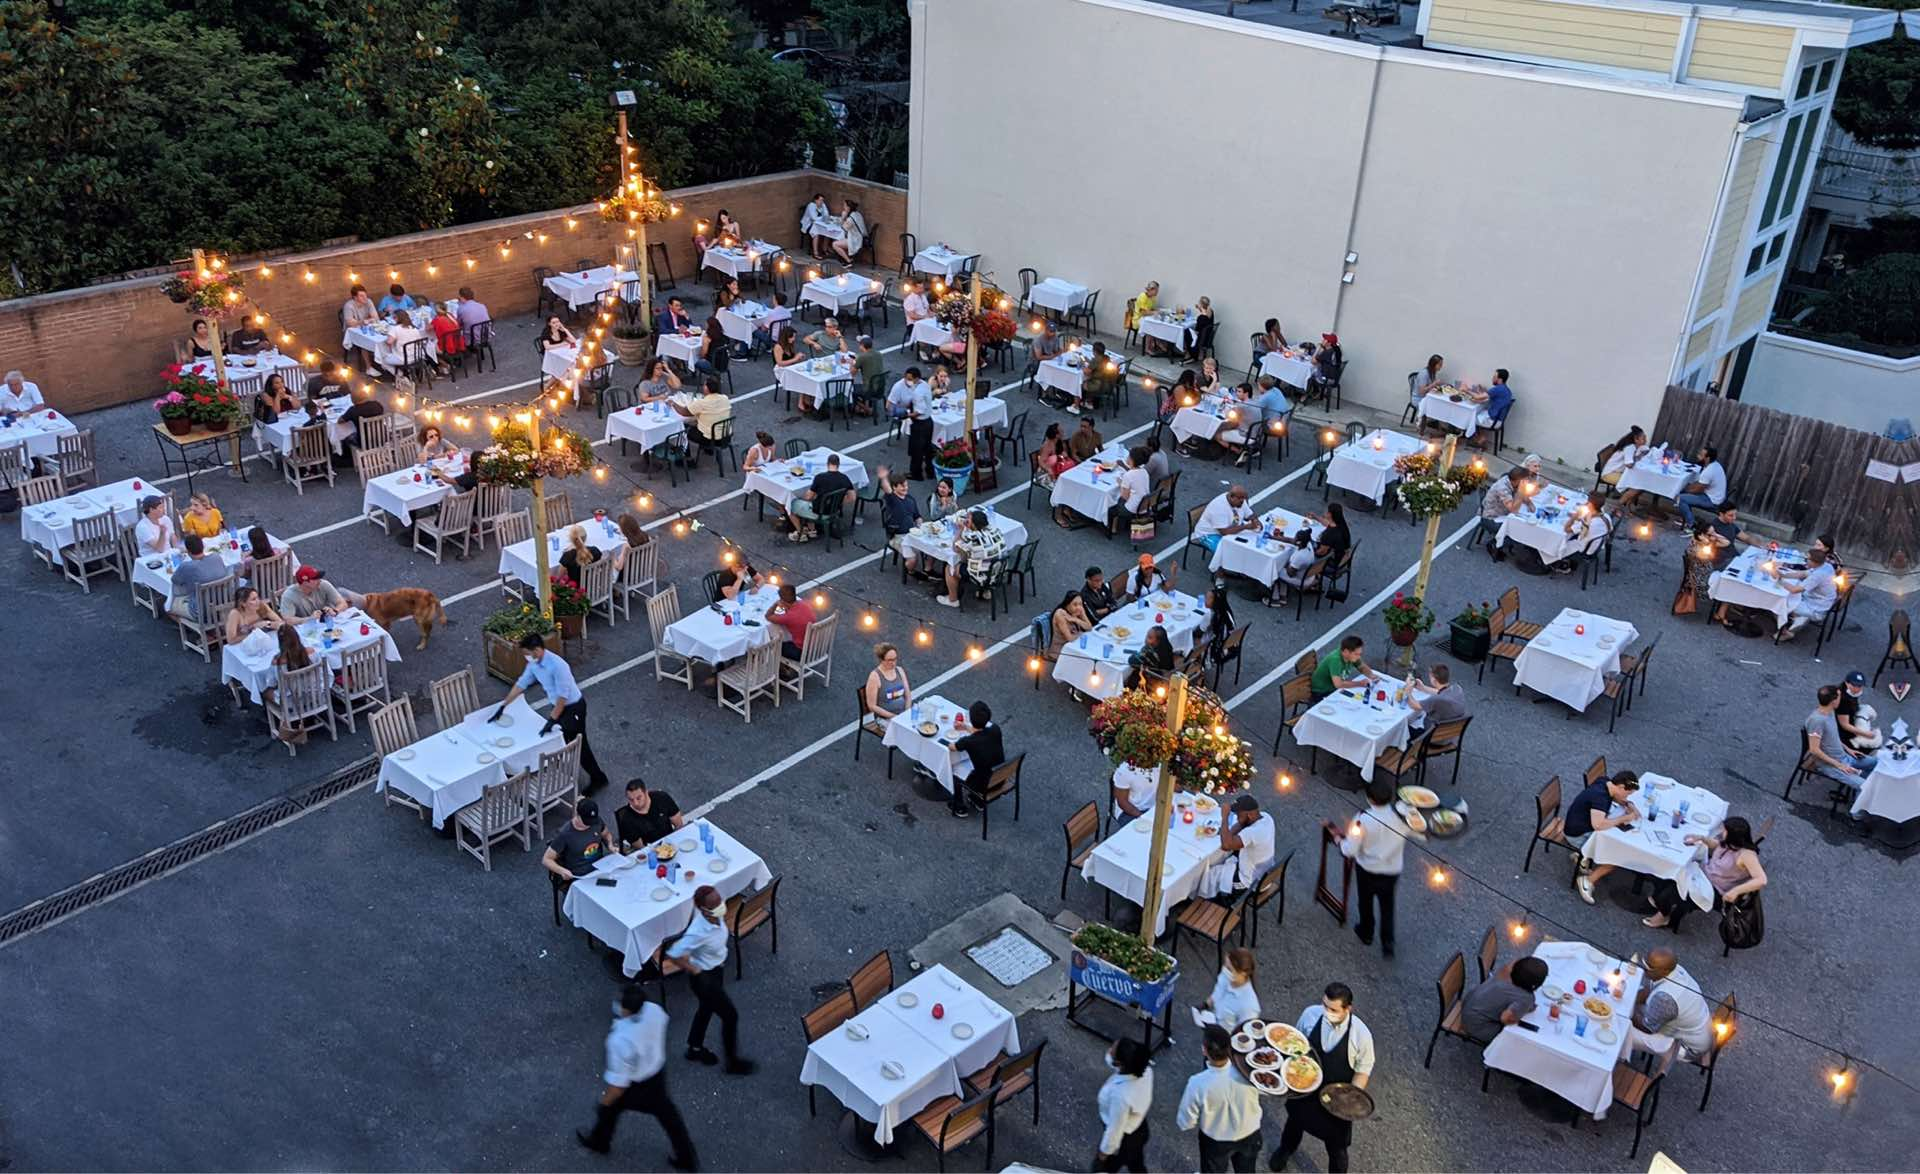 OPEN PATIOS IN DUPONT CIRCLE